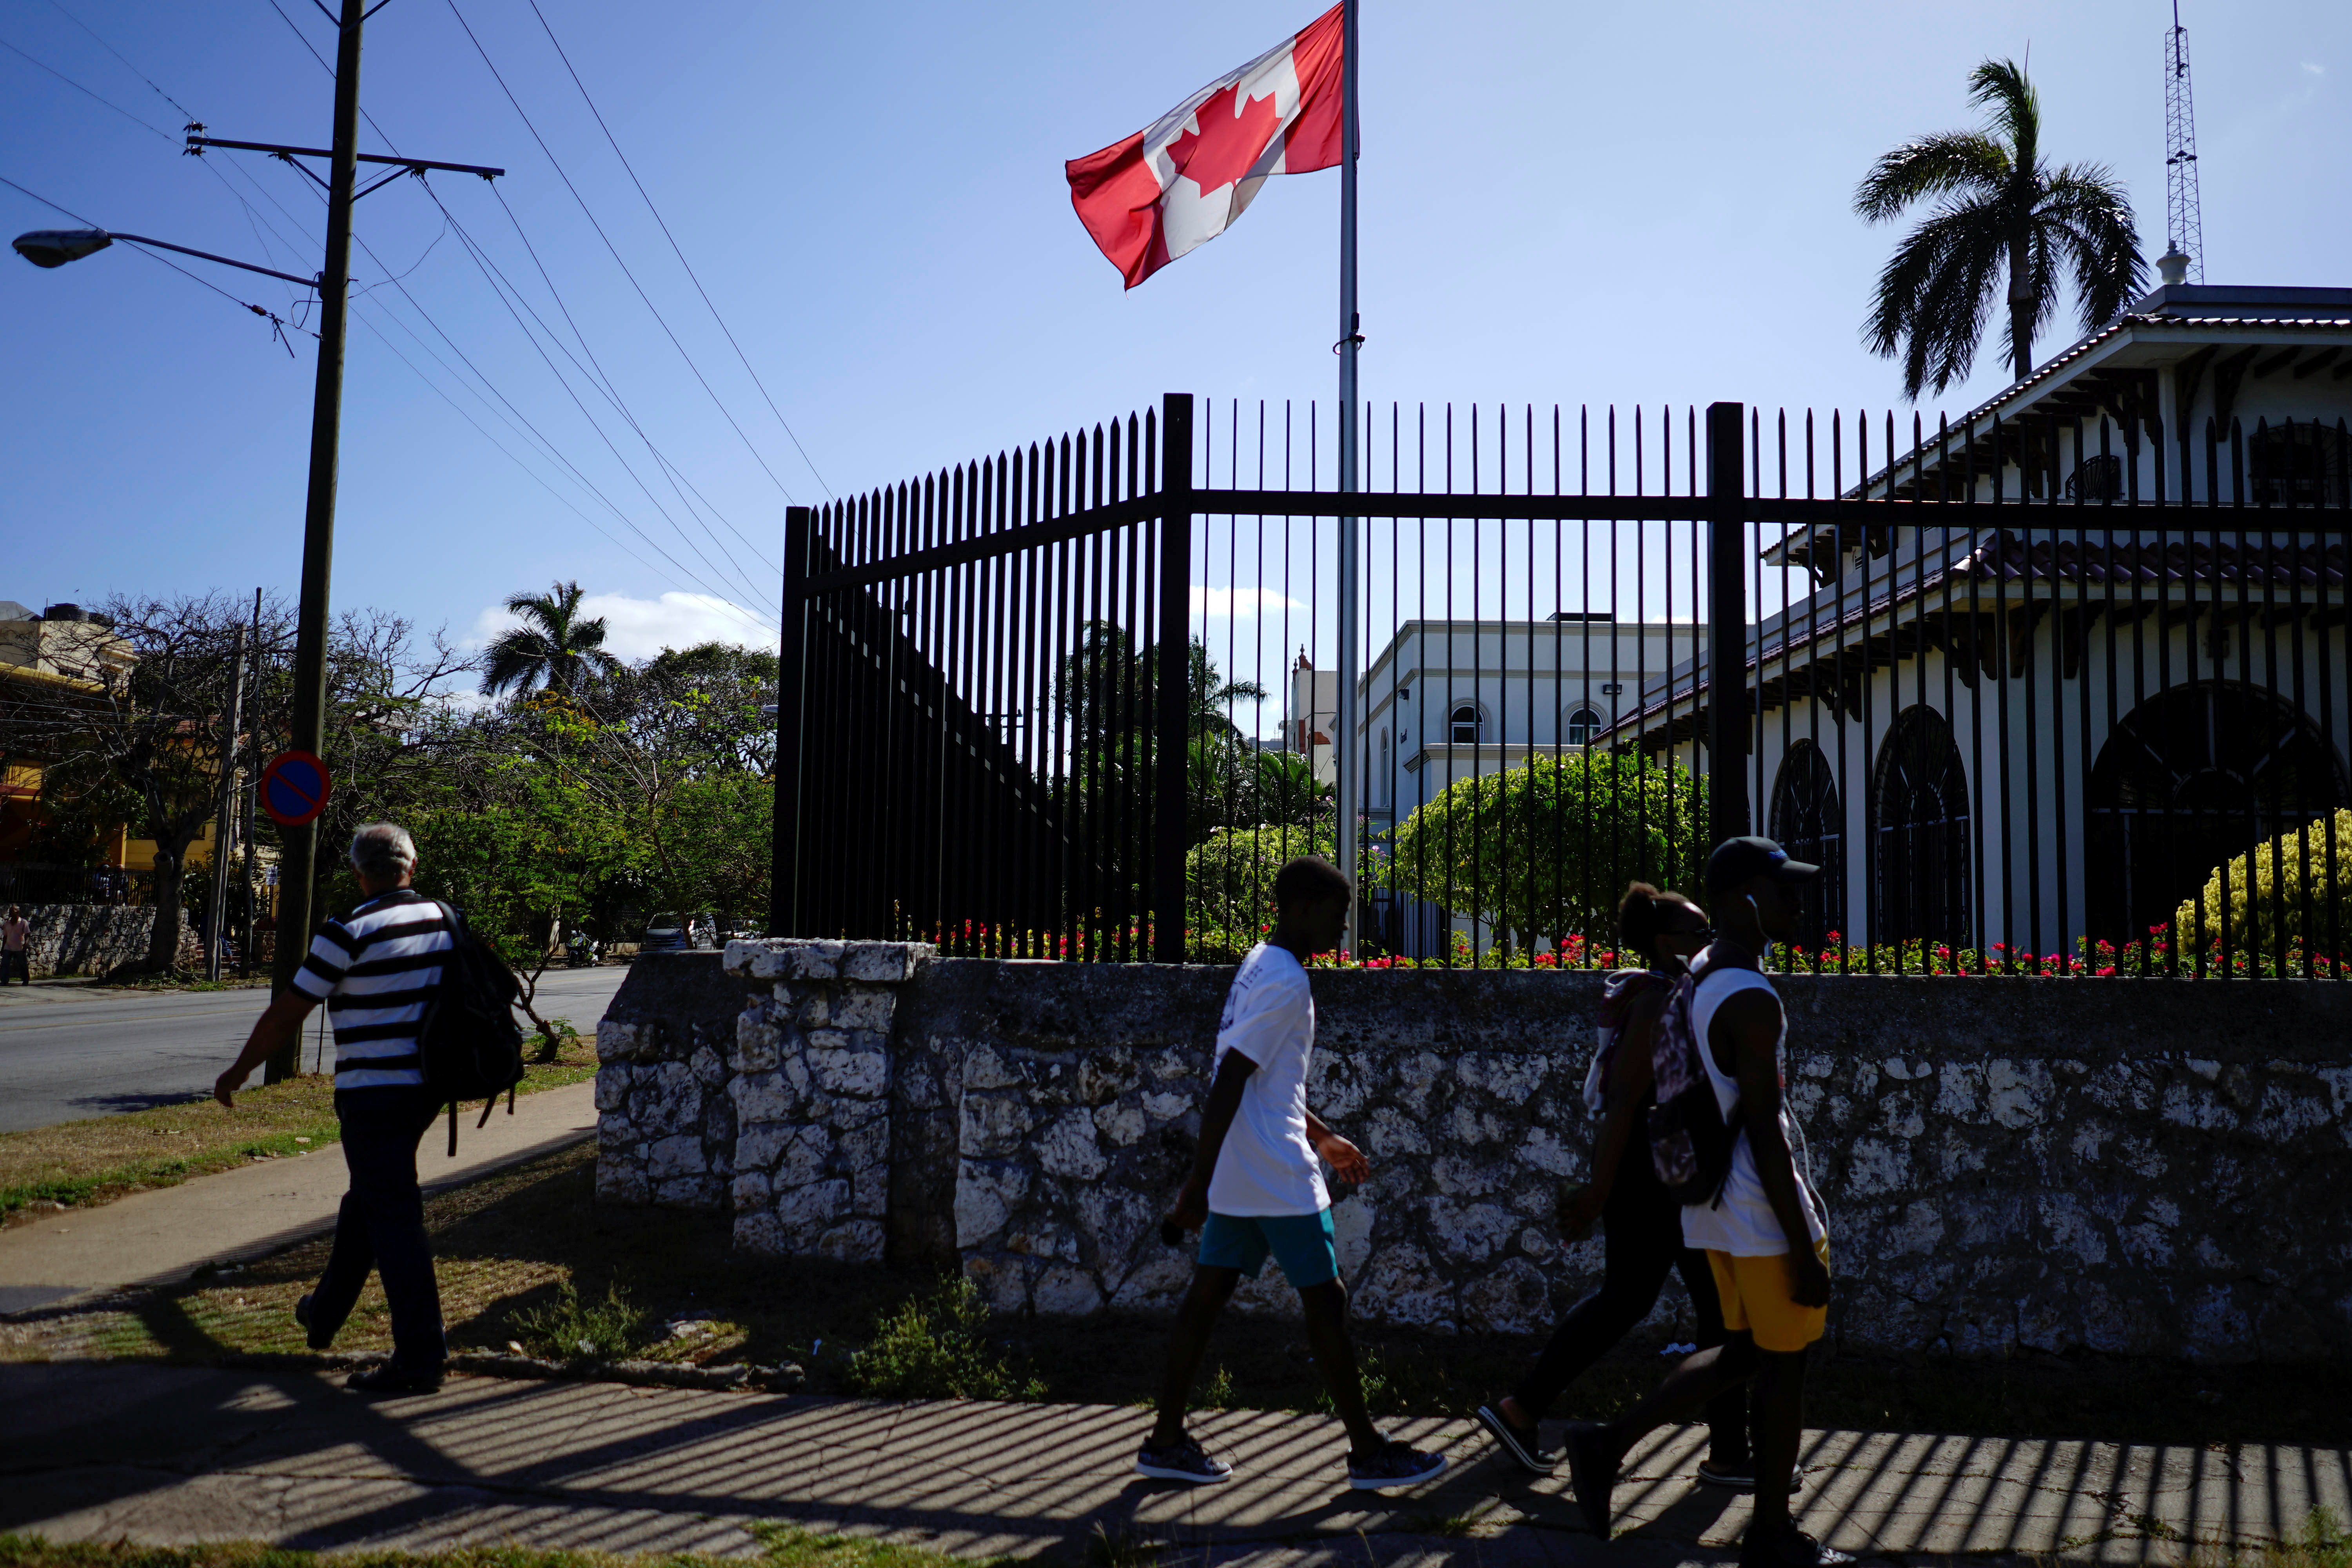 People pass by the Canada's Embassy in Havana, Cuba, April 16, 2018. REUTERS/Alexandre Meneghini